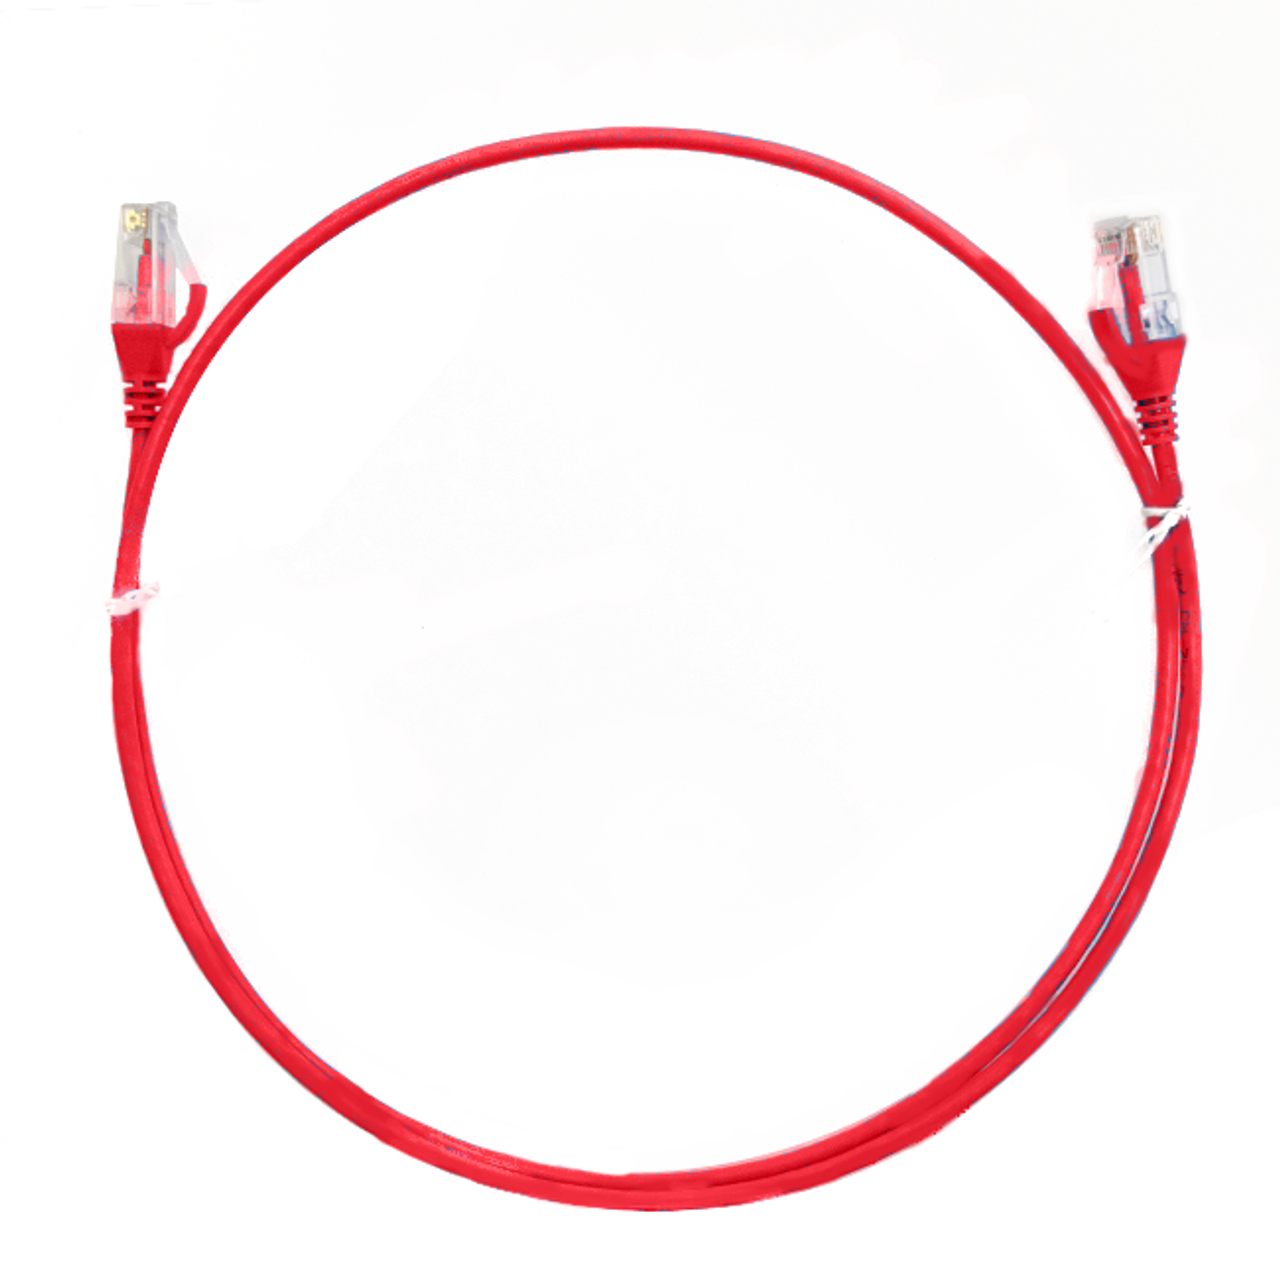 Image for 0.25m Cat 6 Ultra Thin LSZH Ethernet Network Cables: Red CX Computer Superstore